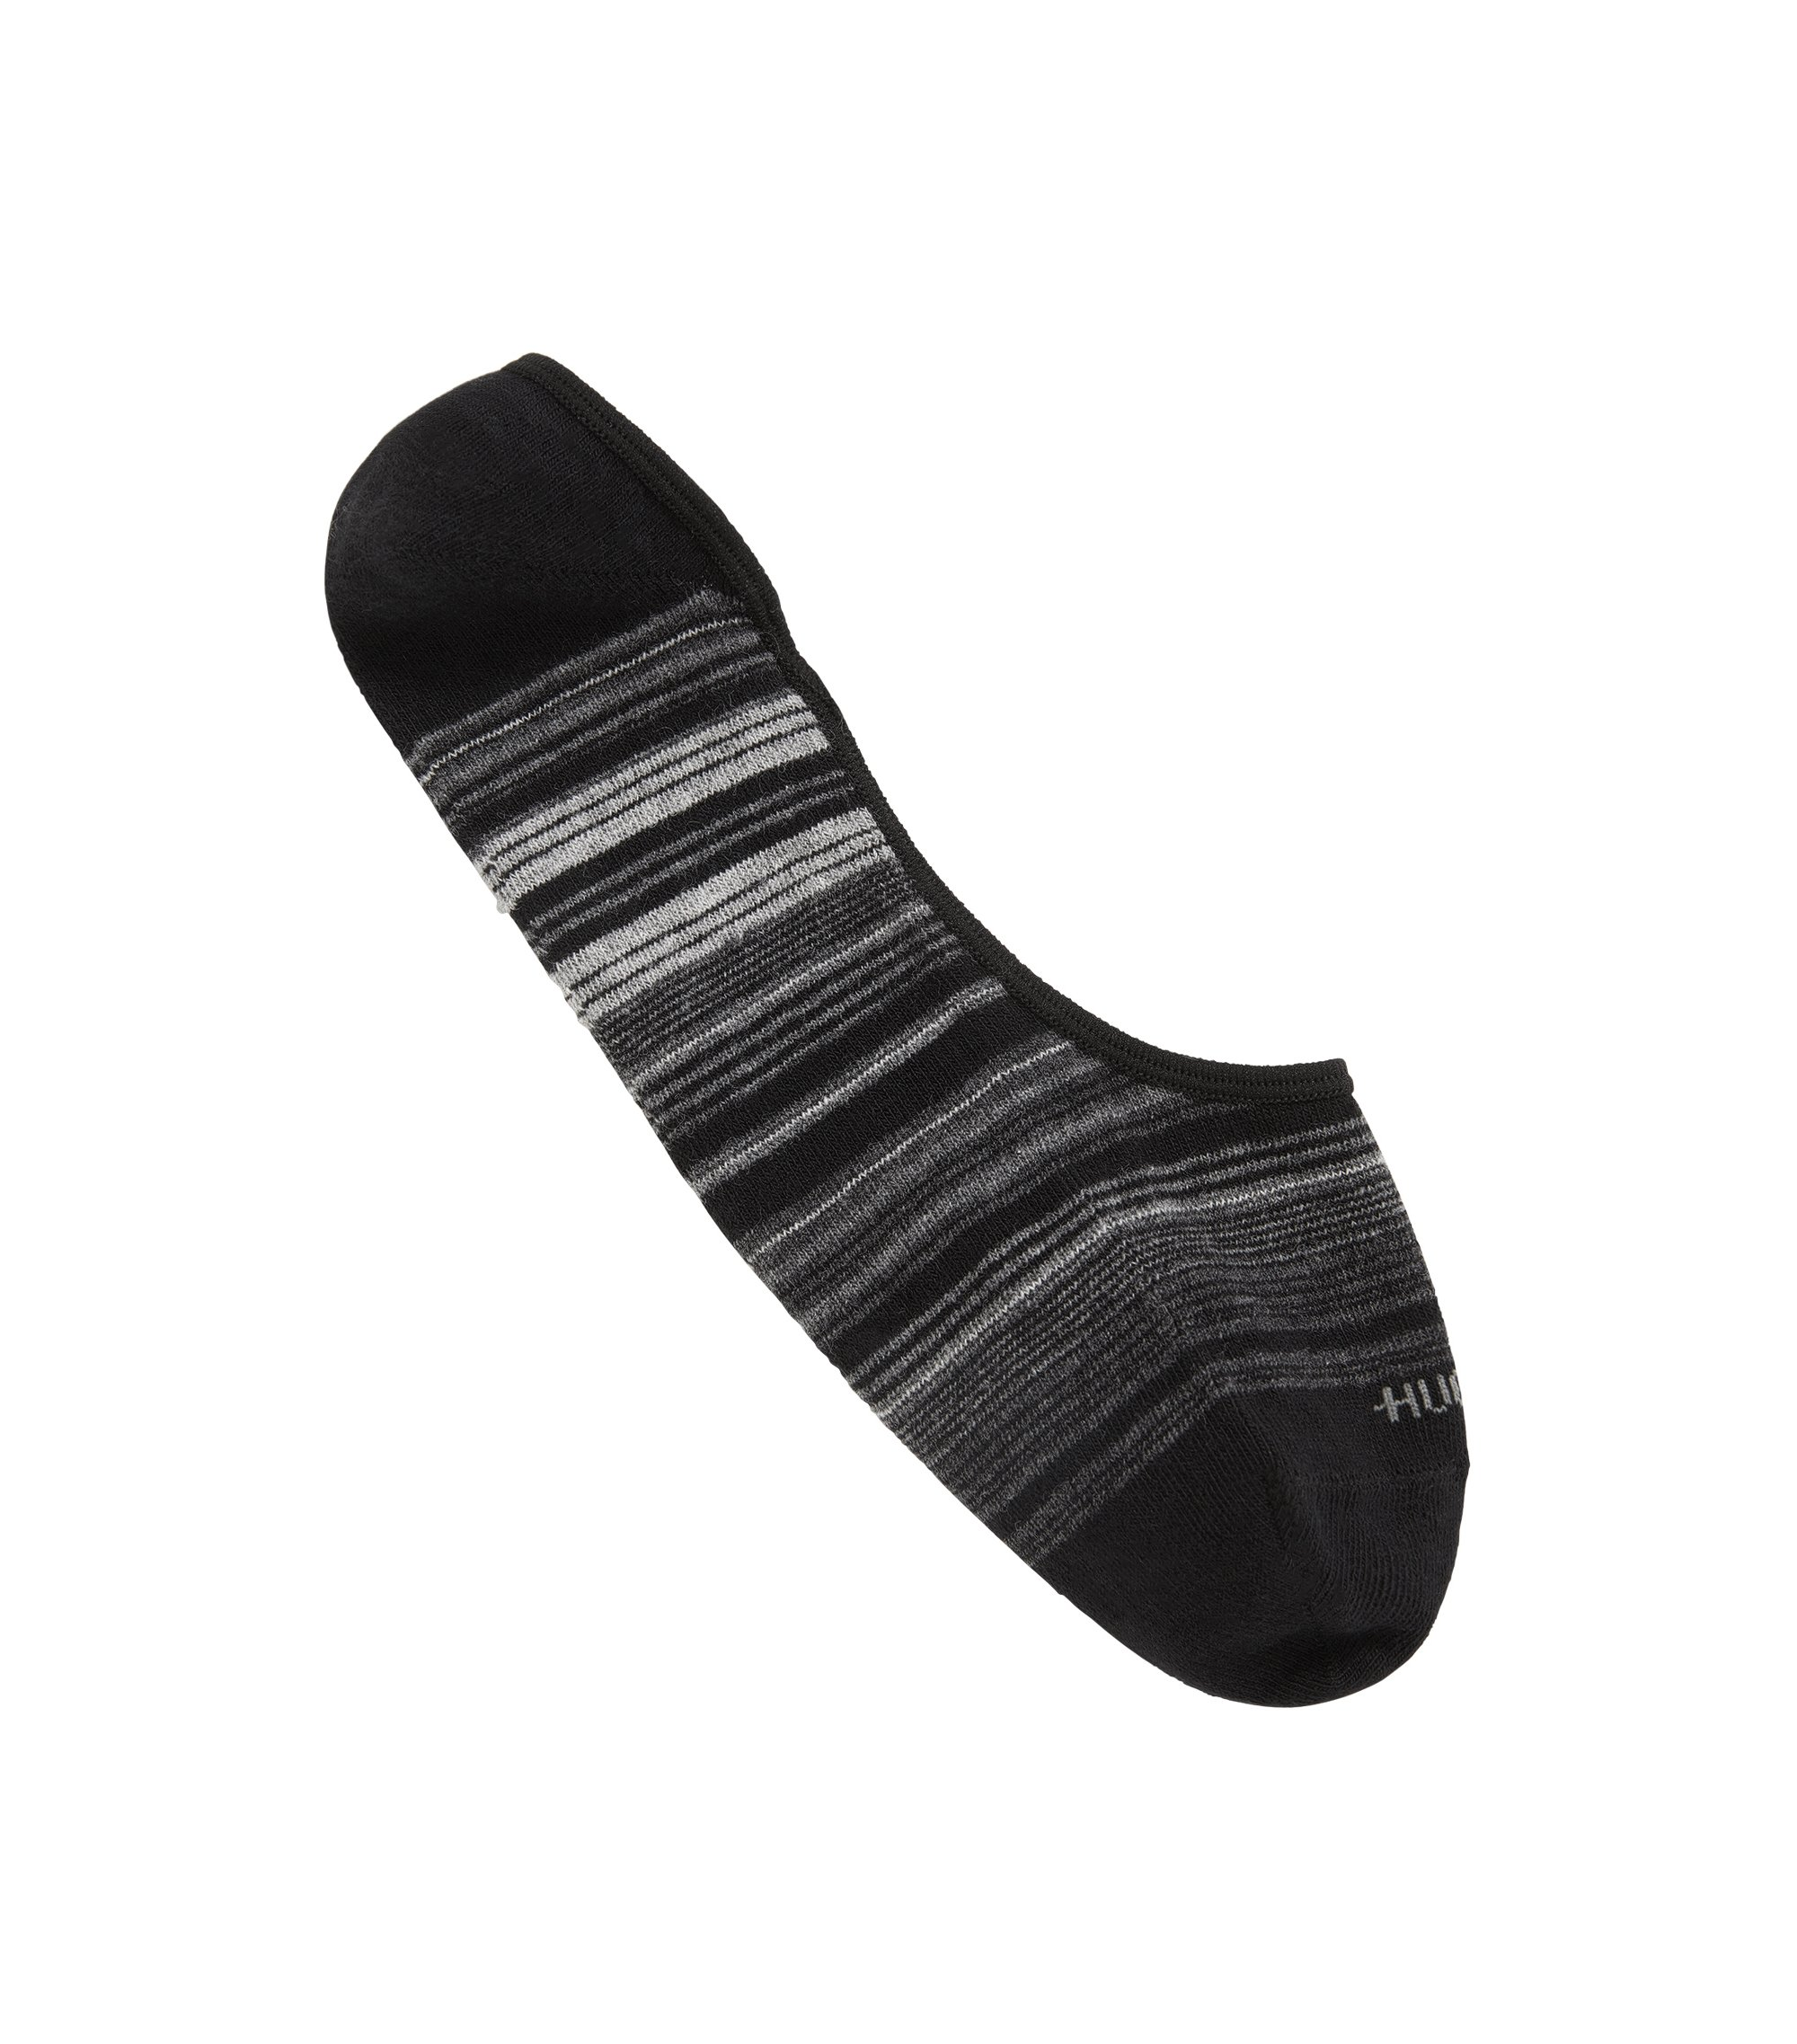 Cotton-blend invisible socks with combed finish, Schwarz